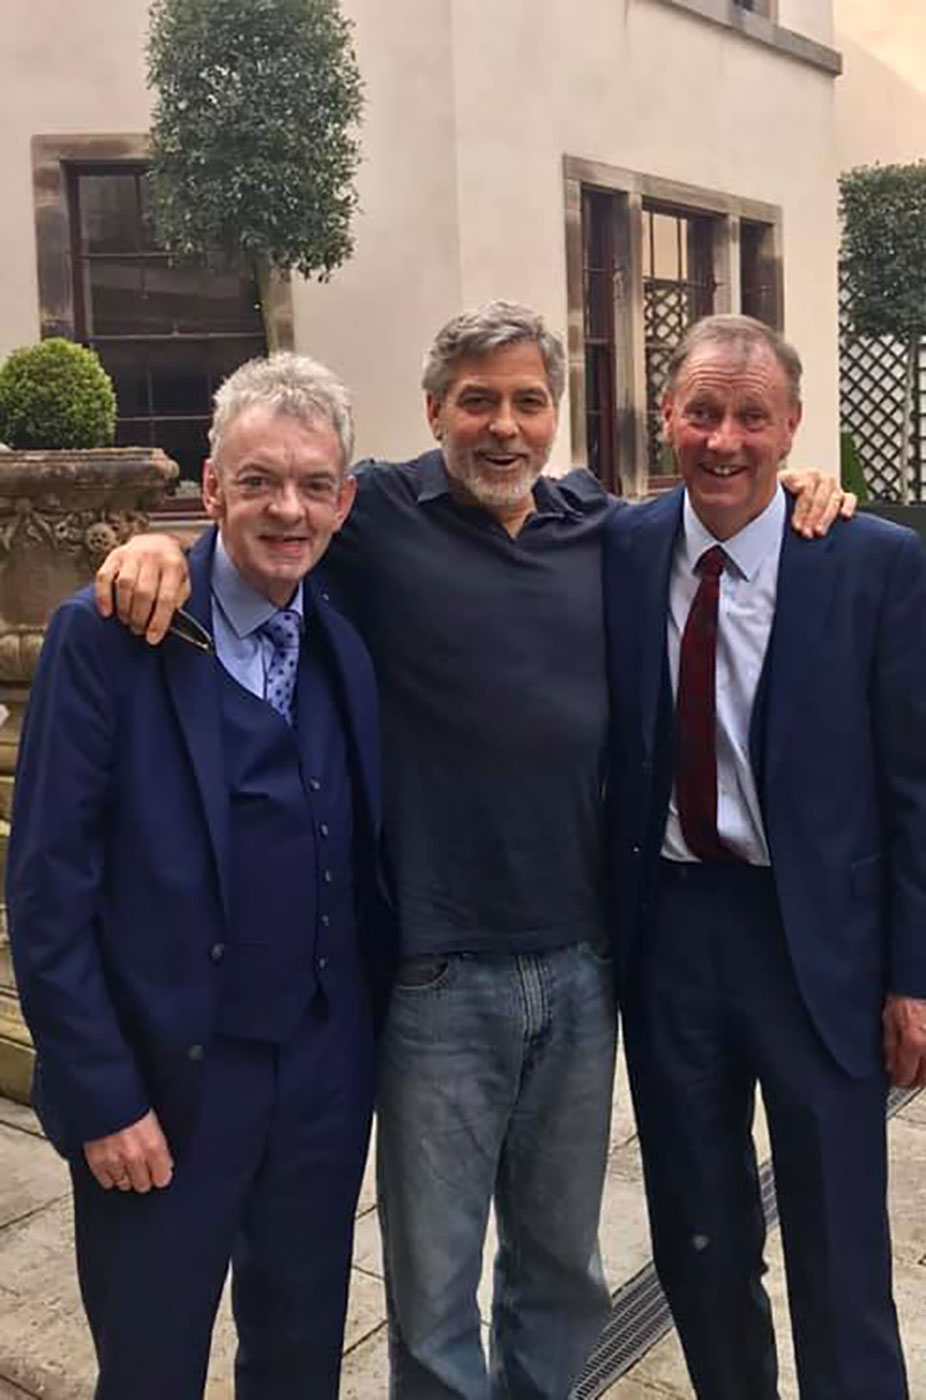 Andy Ring, George and Seamus Clooney, Balyfin House, County Laois.